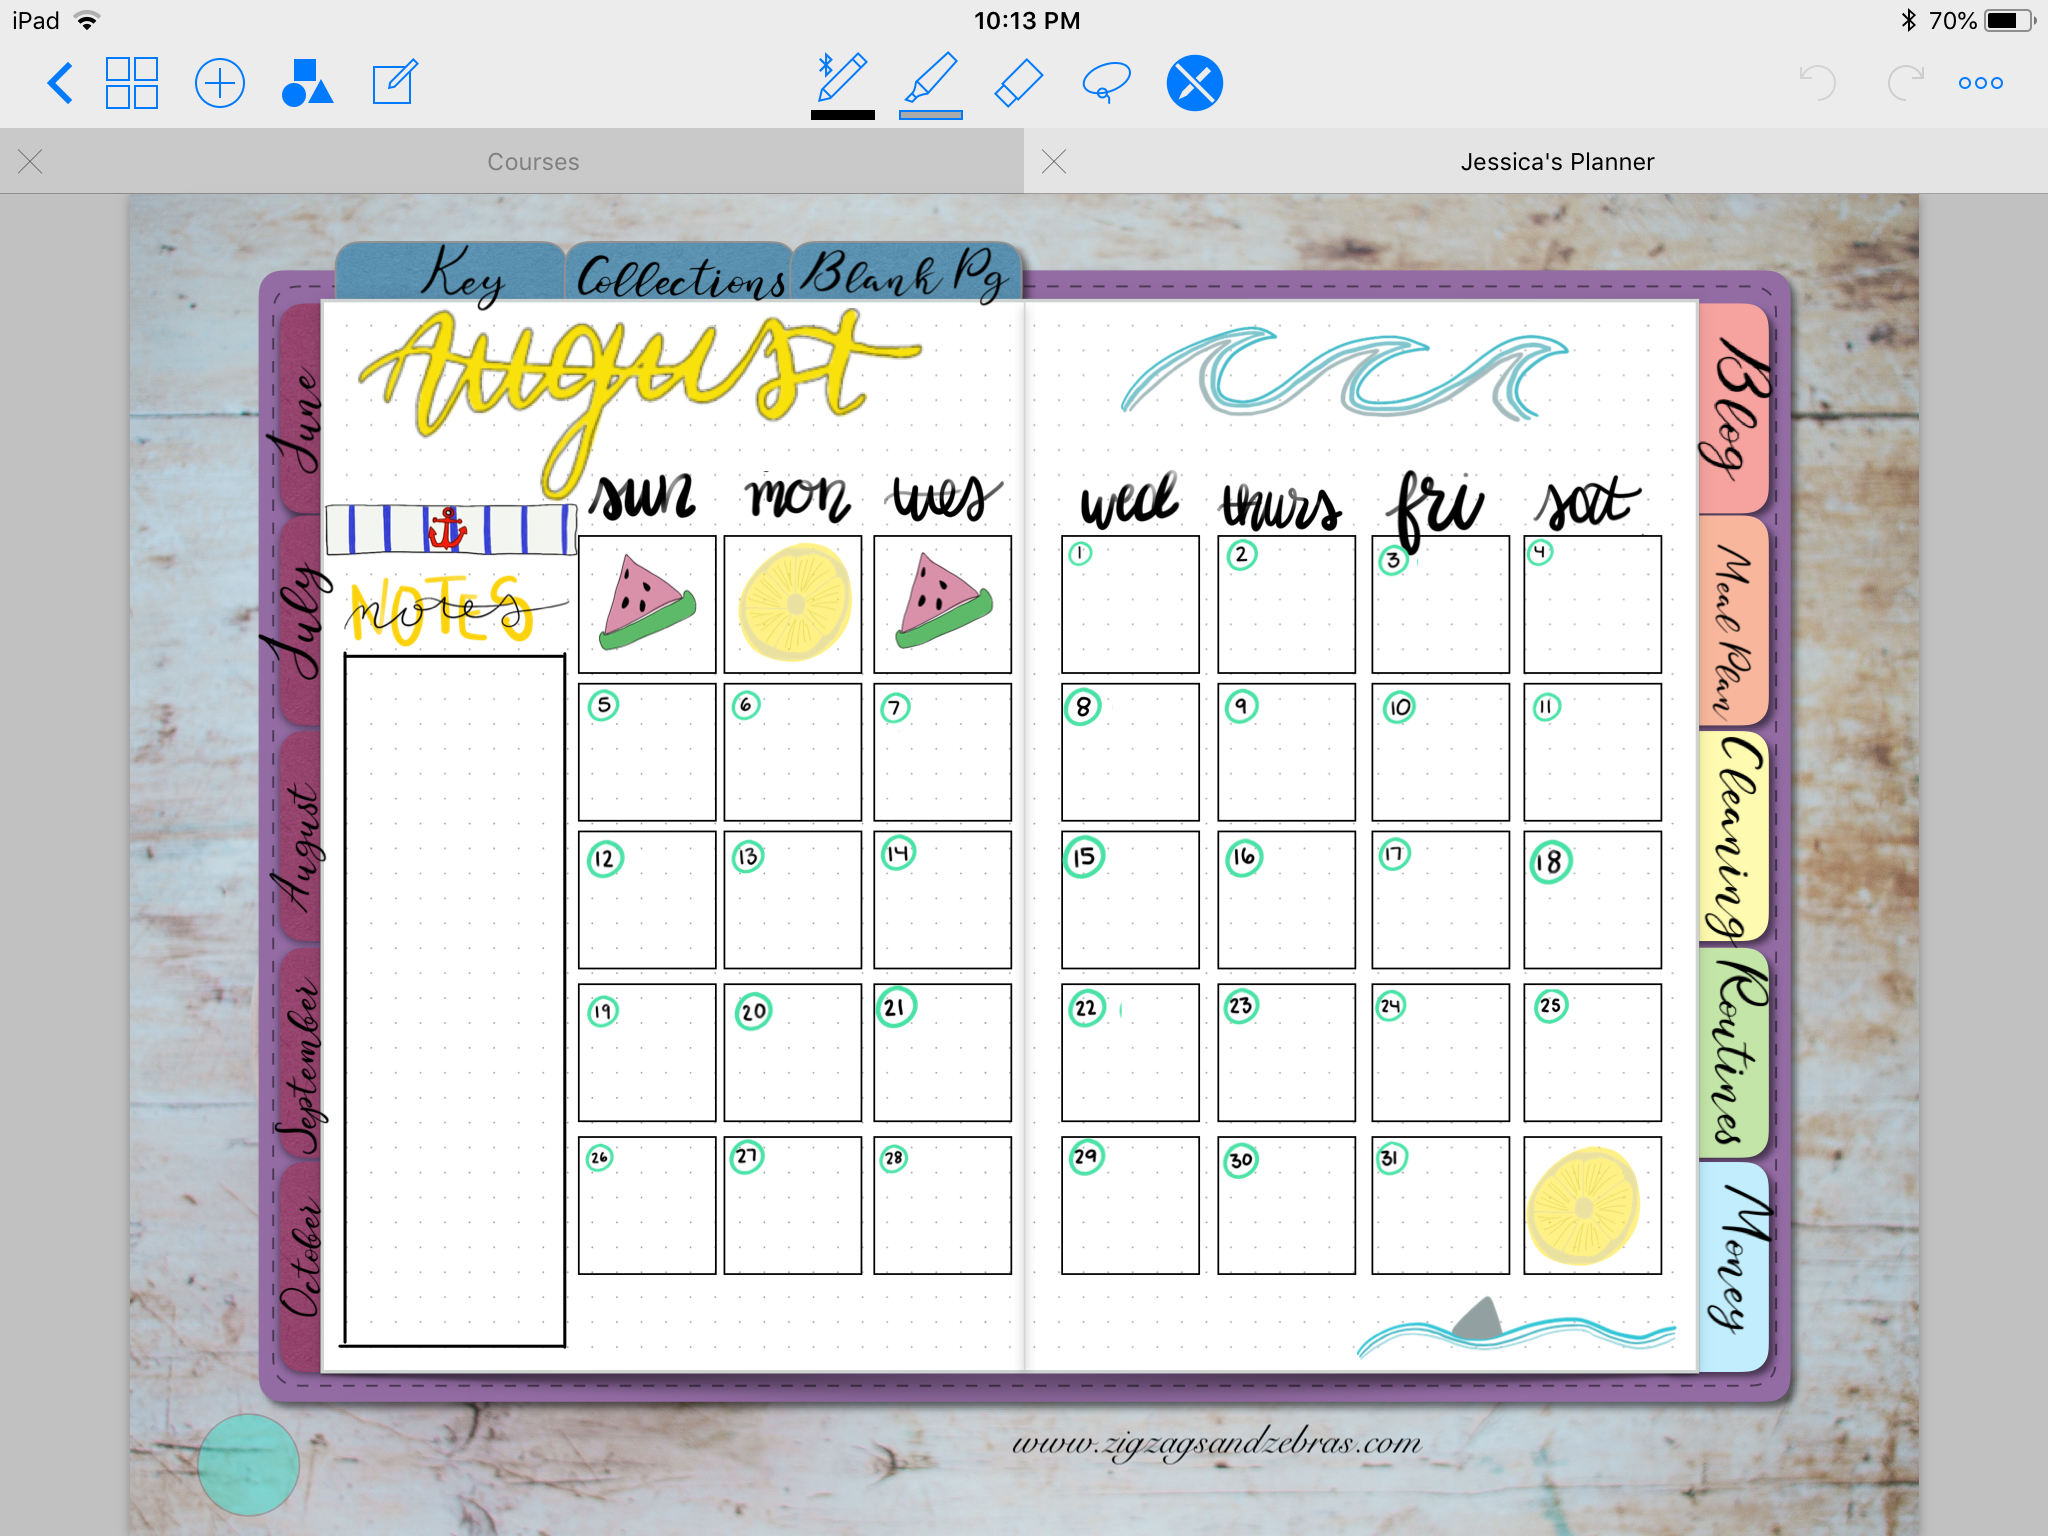 DIGITAL PLANNER SETUP | august digital planner layouts, digital bullet journal, monthly layout, monthly spread, editorial calendar, time blocking, time management